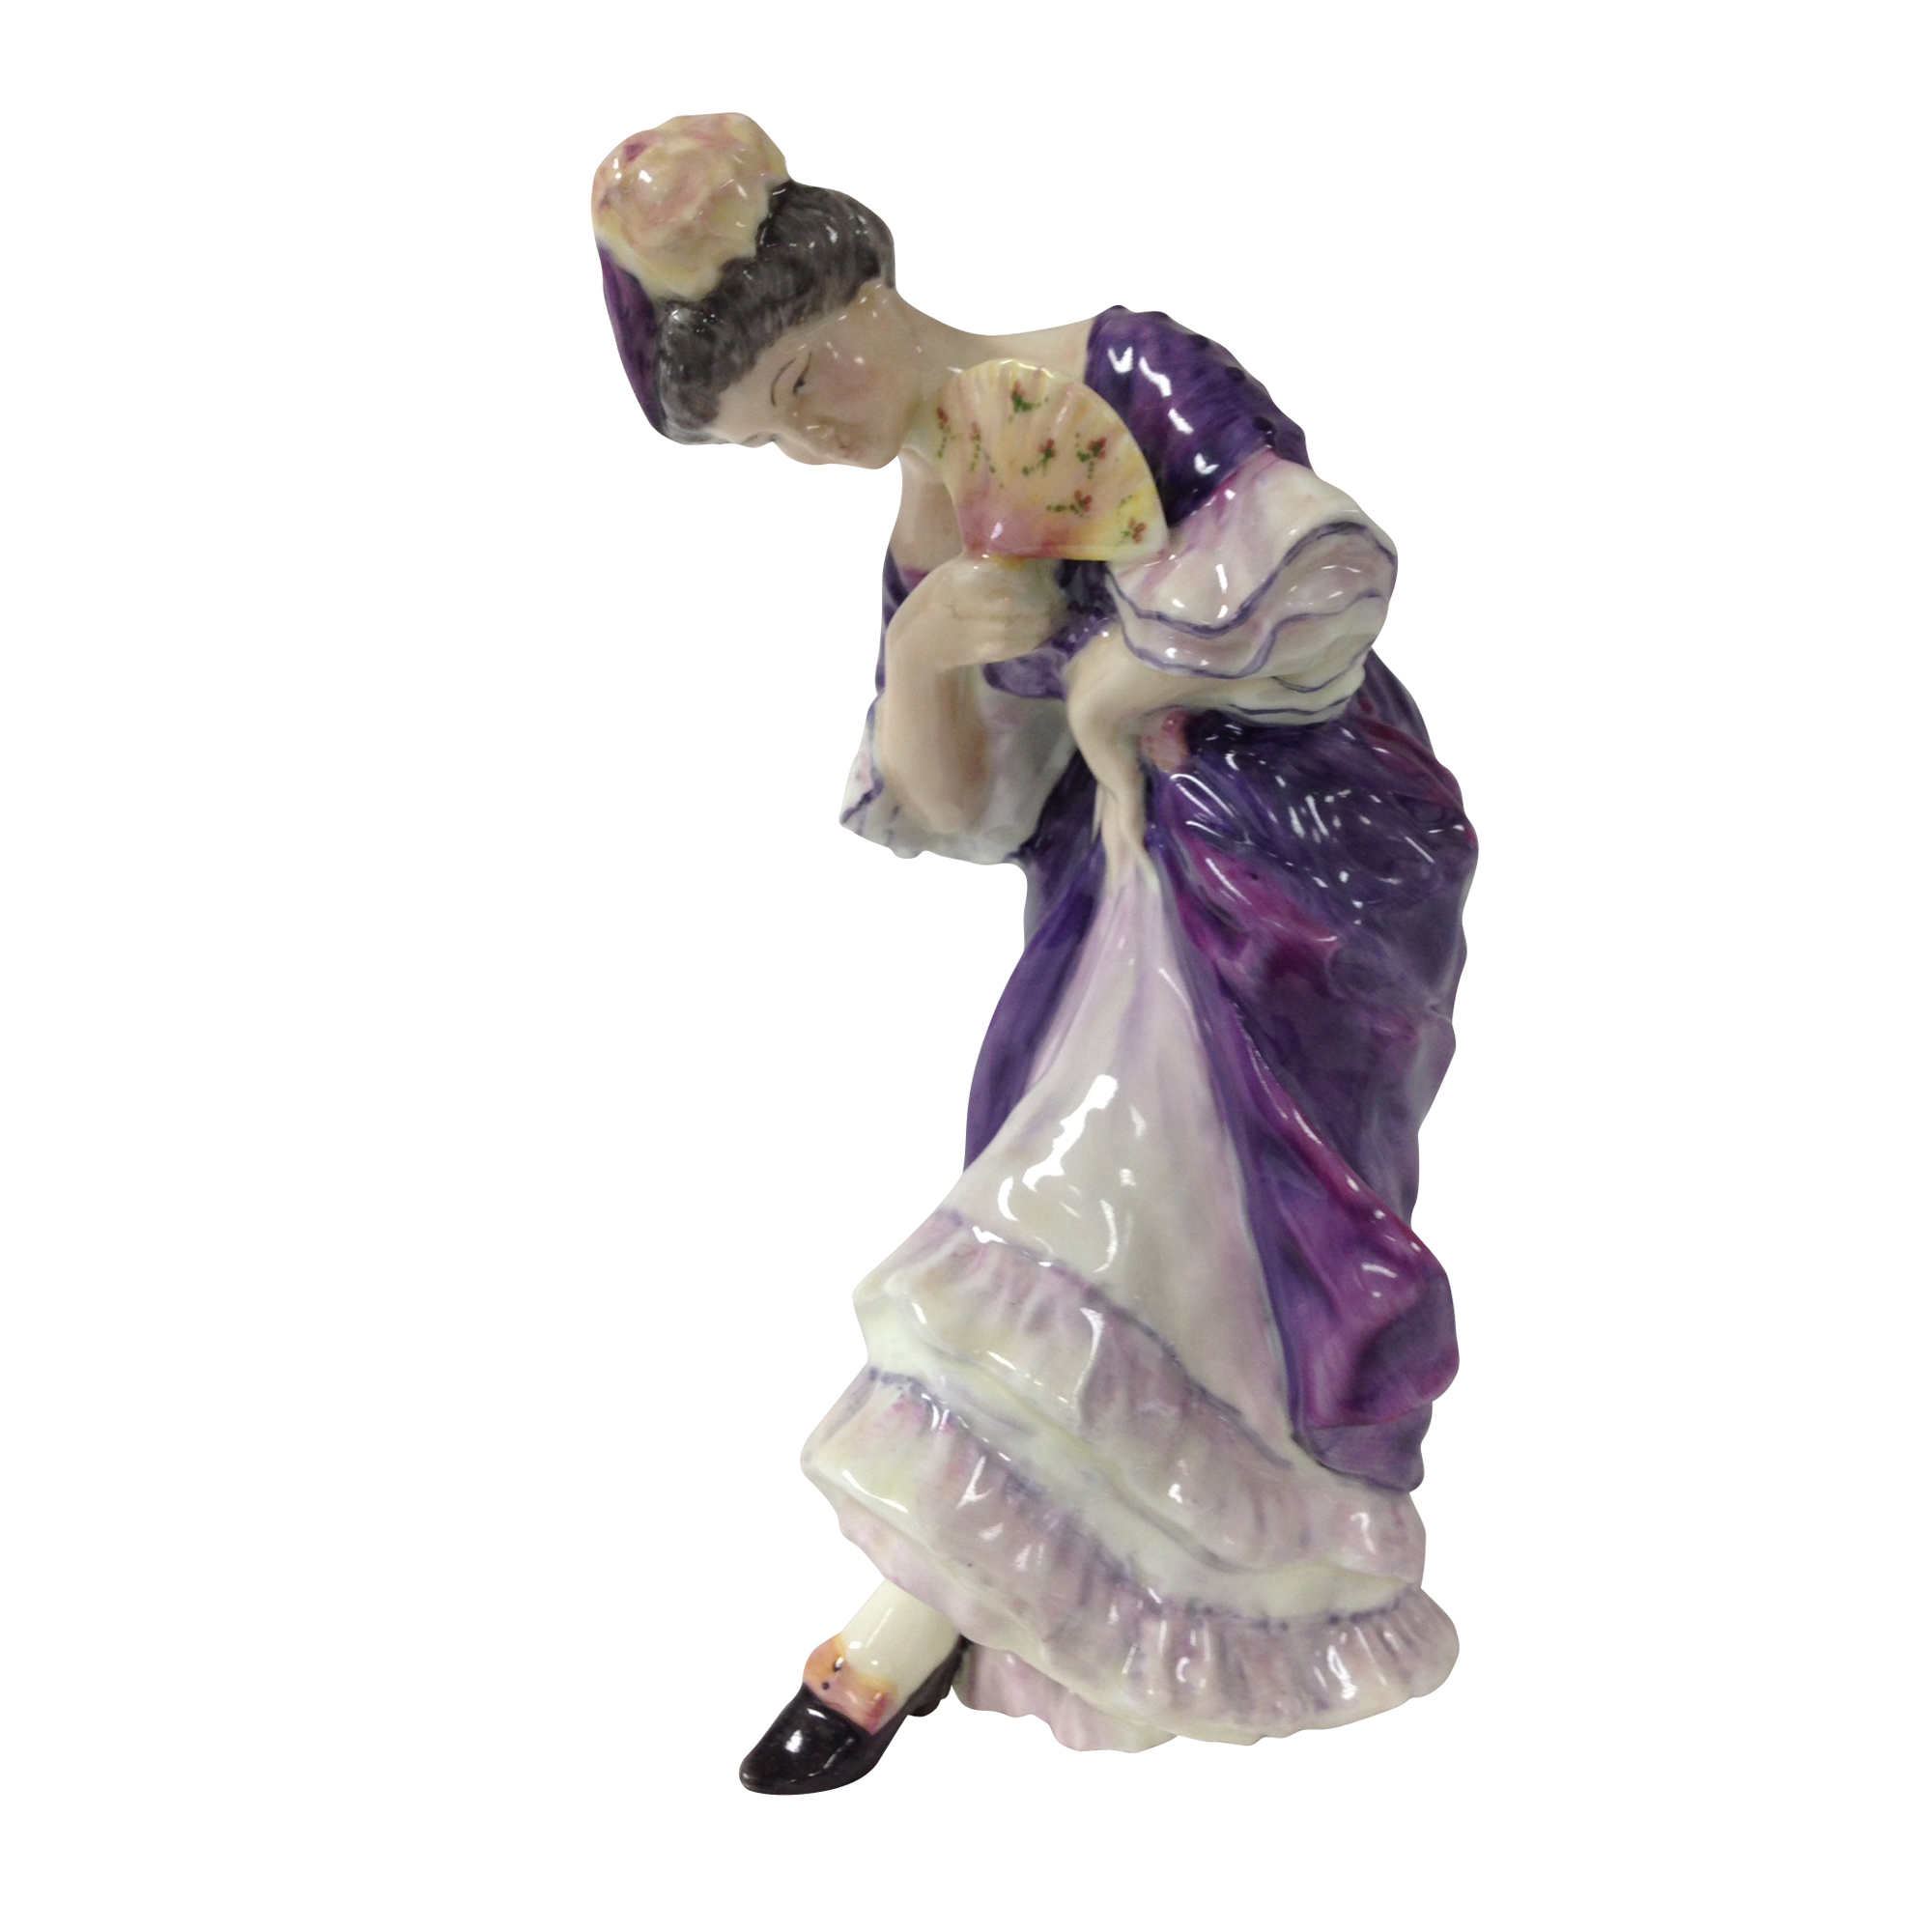 Lady with Fan - Royal Doulton Figurine